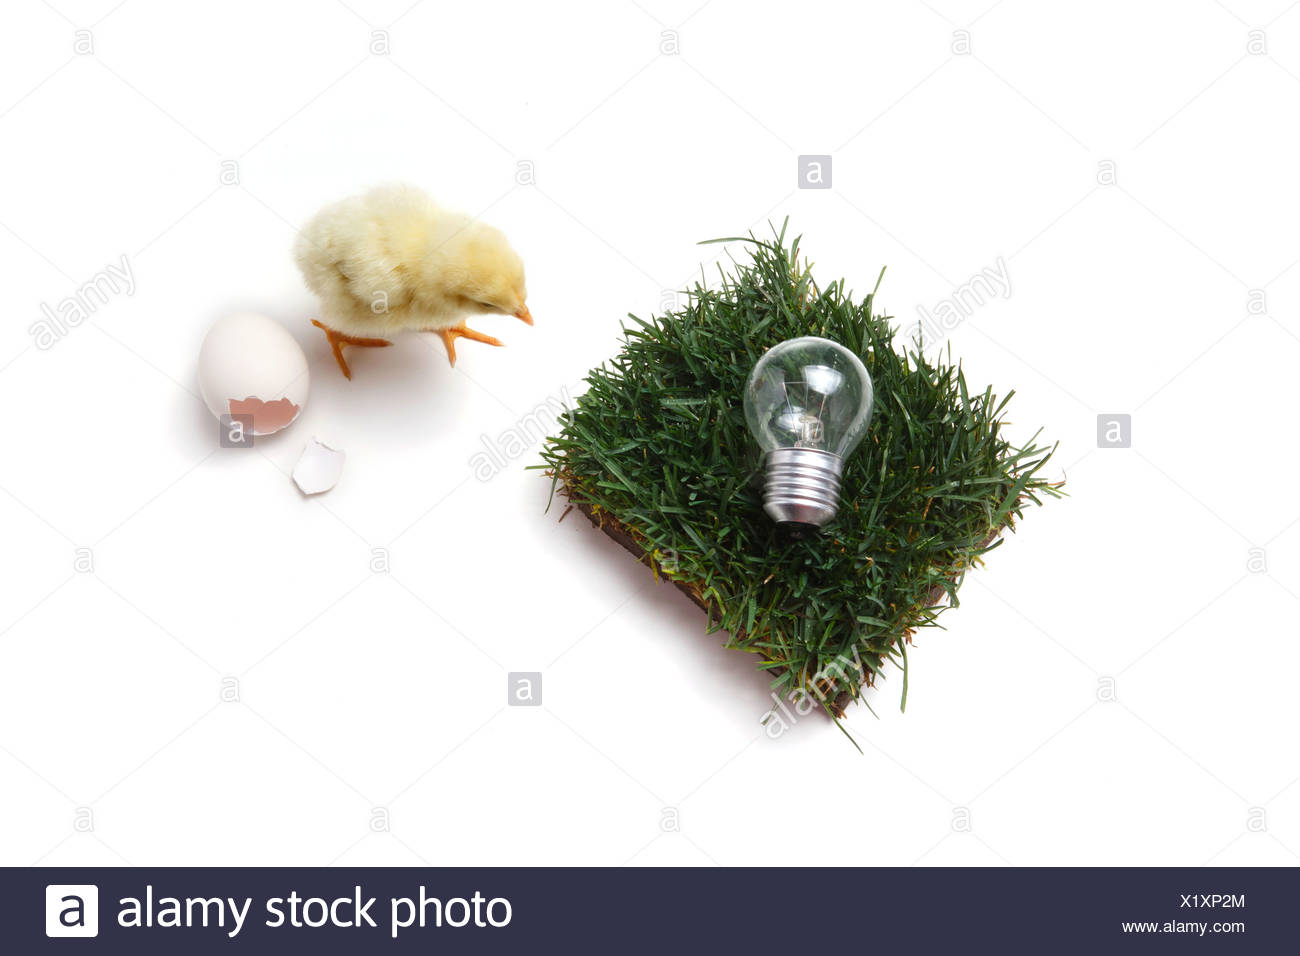 Fellow chick standing by broken eggshell,lawn and bulb - Stock Image